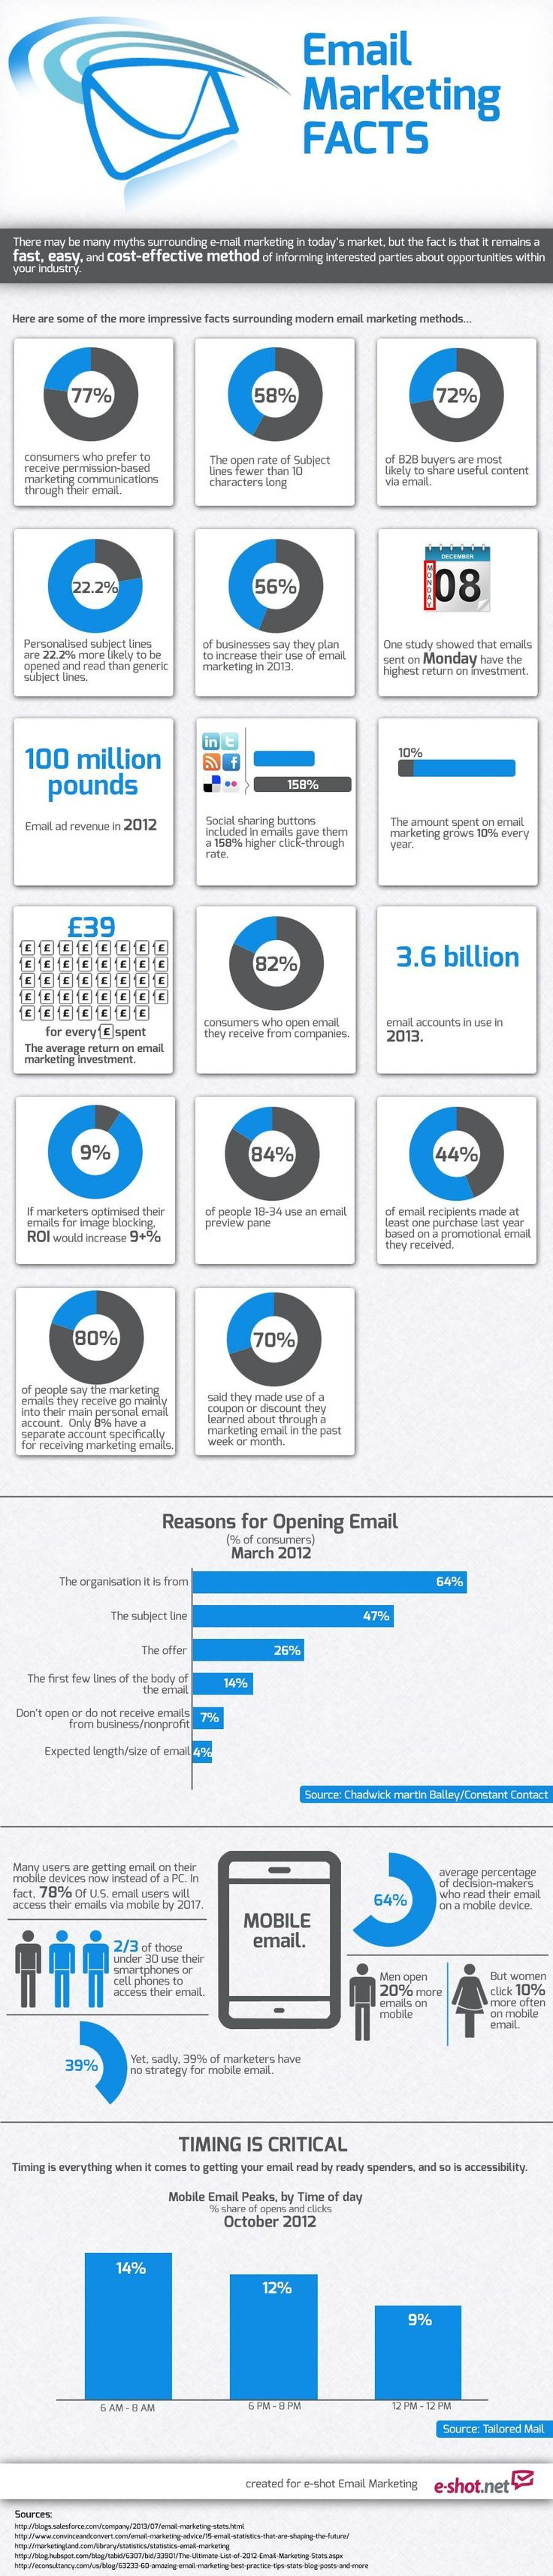 There may be many myths surrounding e-mail marketing in today's market, but the fact remains that it is cost-effective